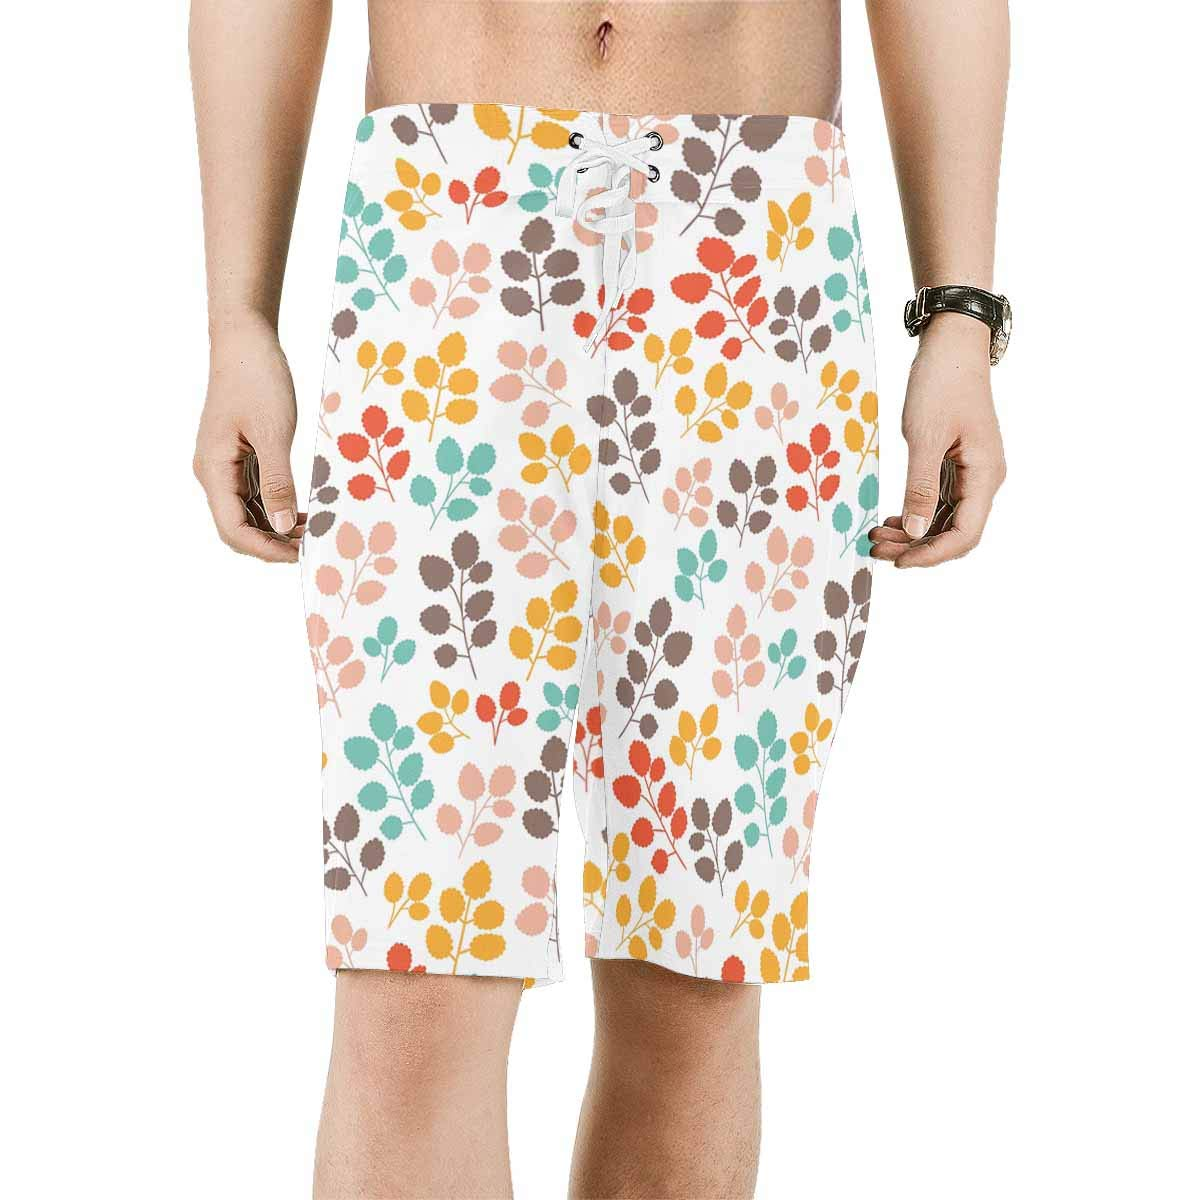 INTERESTPRINT Mens Beach Shorts Colorful Leaves Quick Dry Swim Trunks XS-6XL